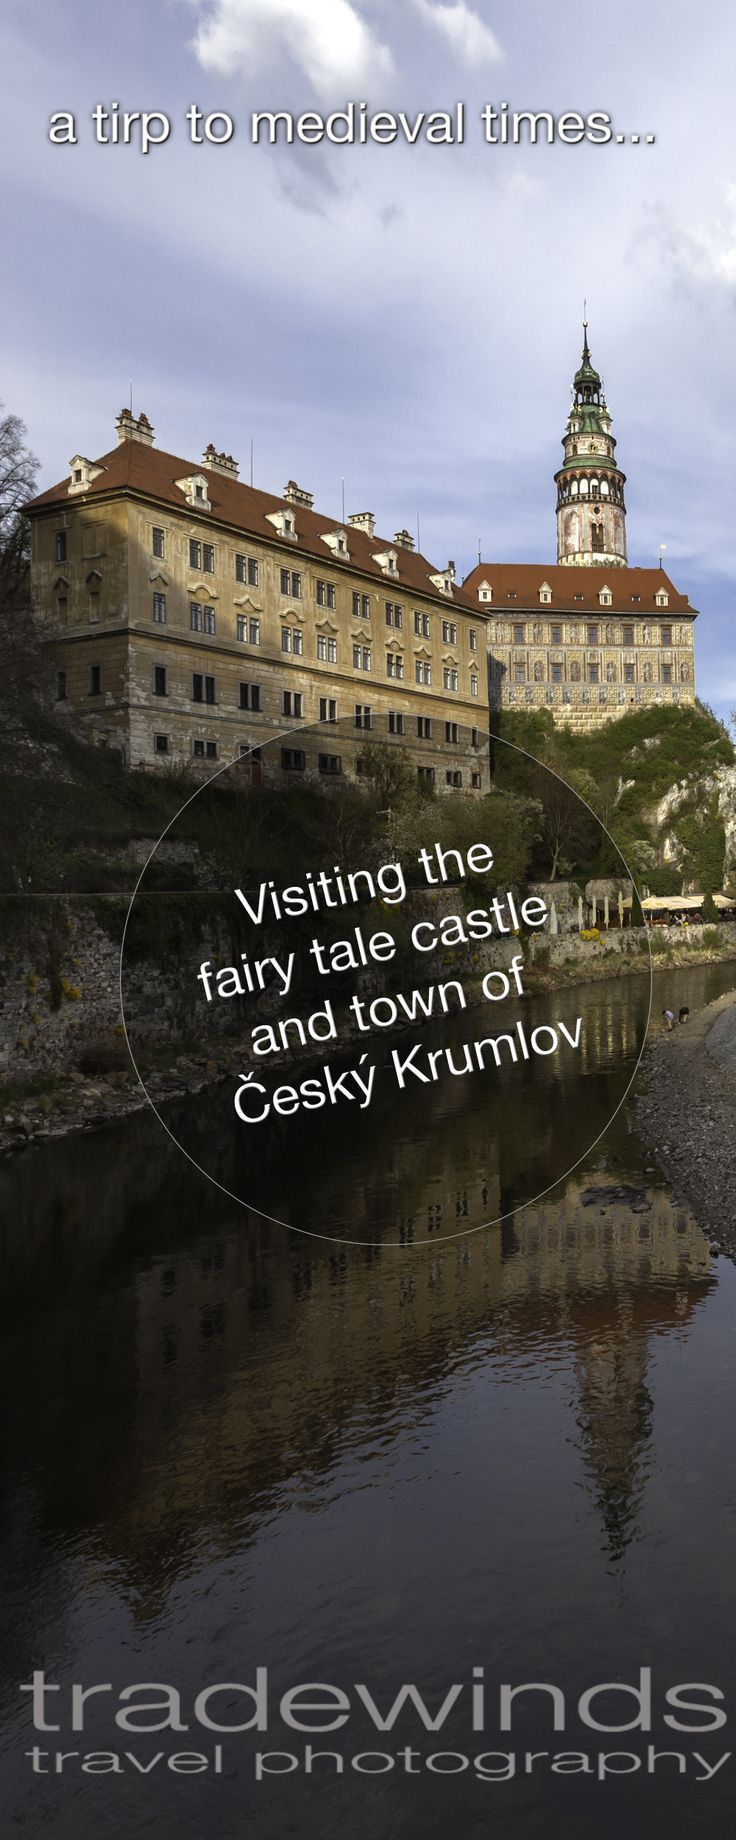 A trip to a long forgotten time, The Czech town and castle of Ceske Krumlov in southern Bohemia. ---  To view the images galery and article click here. http://www.luxuryandtravelphotography.com/travel-photography-krumlov/